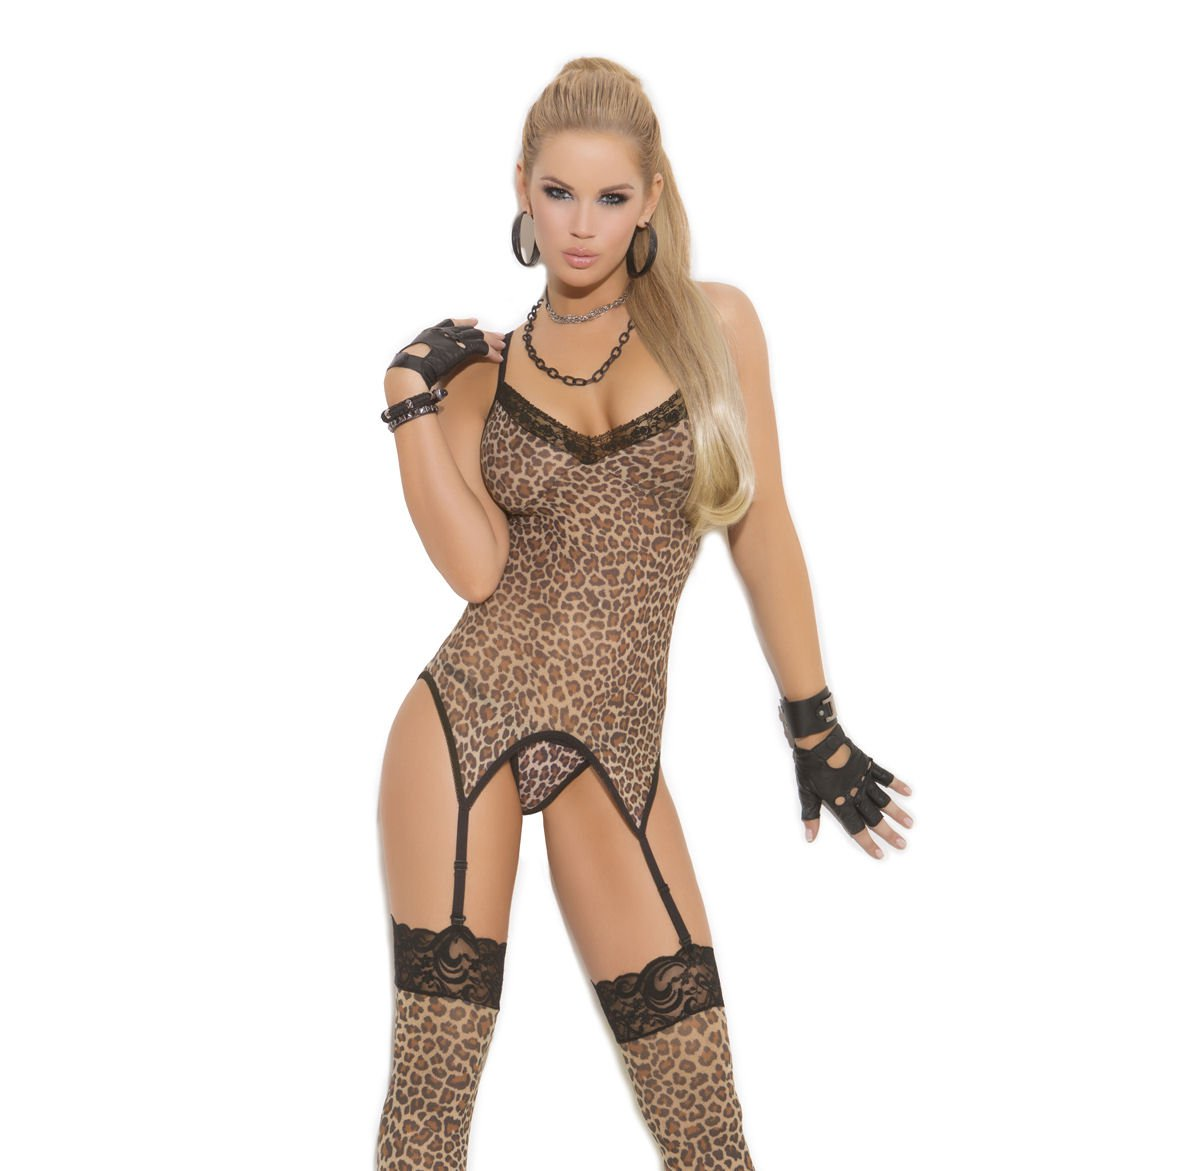 3pc- Leopard Print Camisette G-String & Stockings - One Size